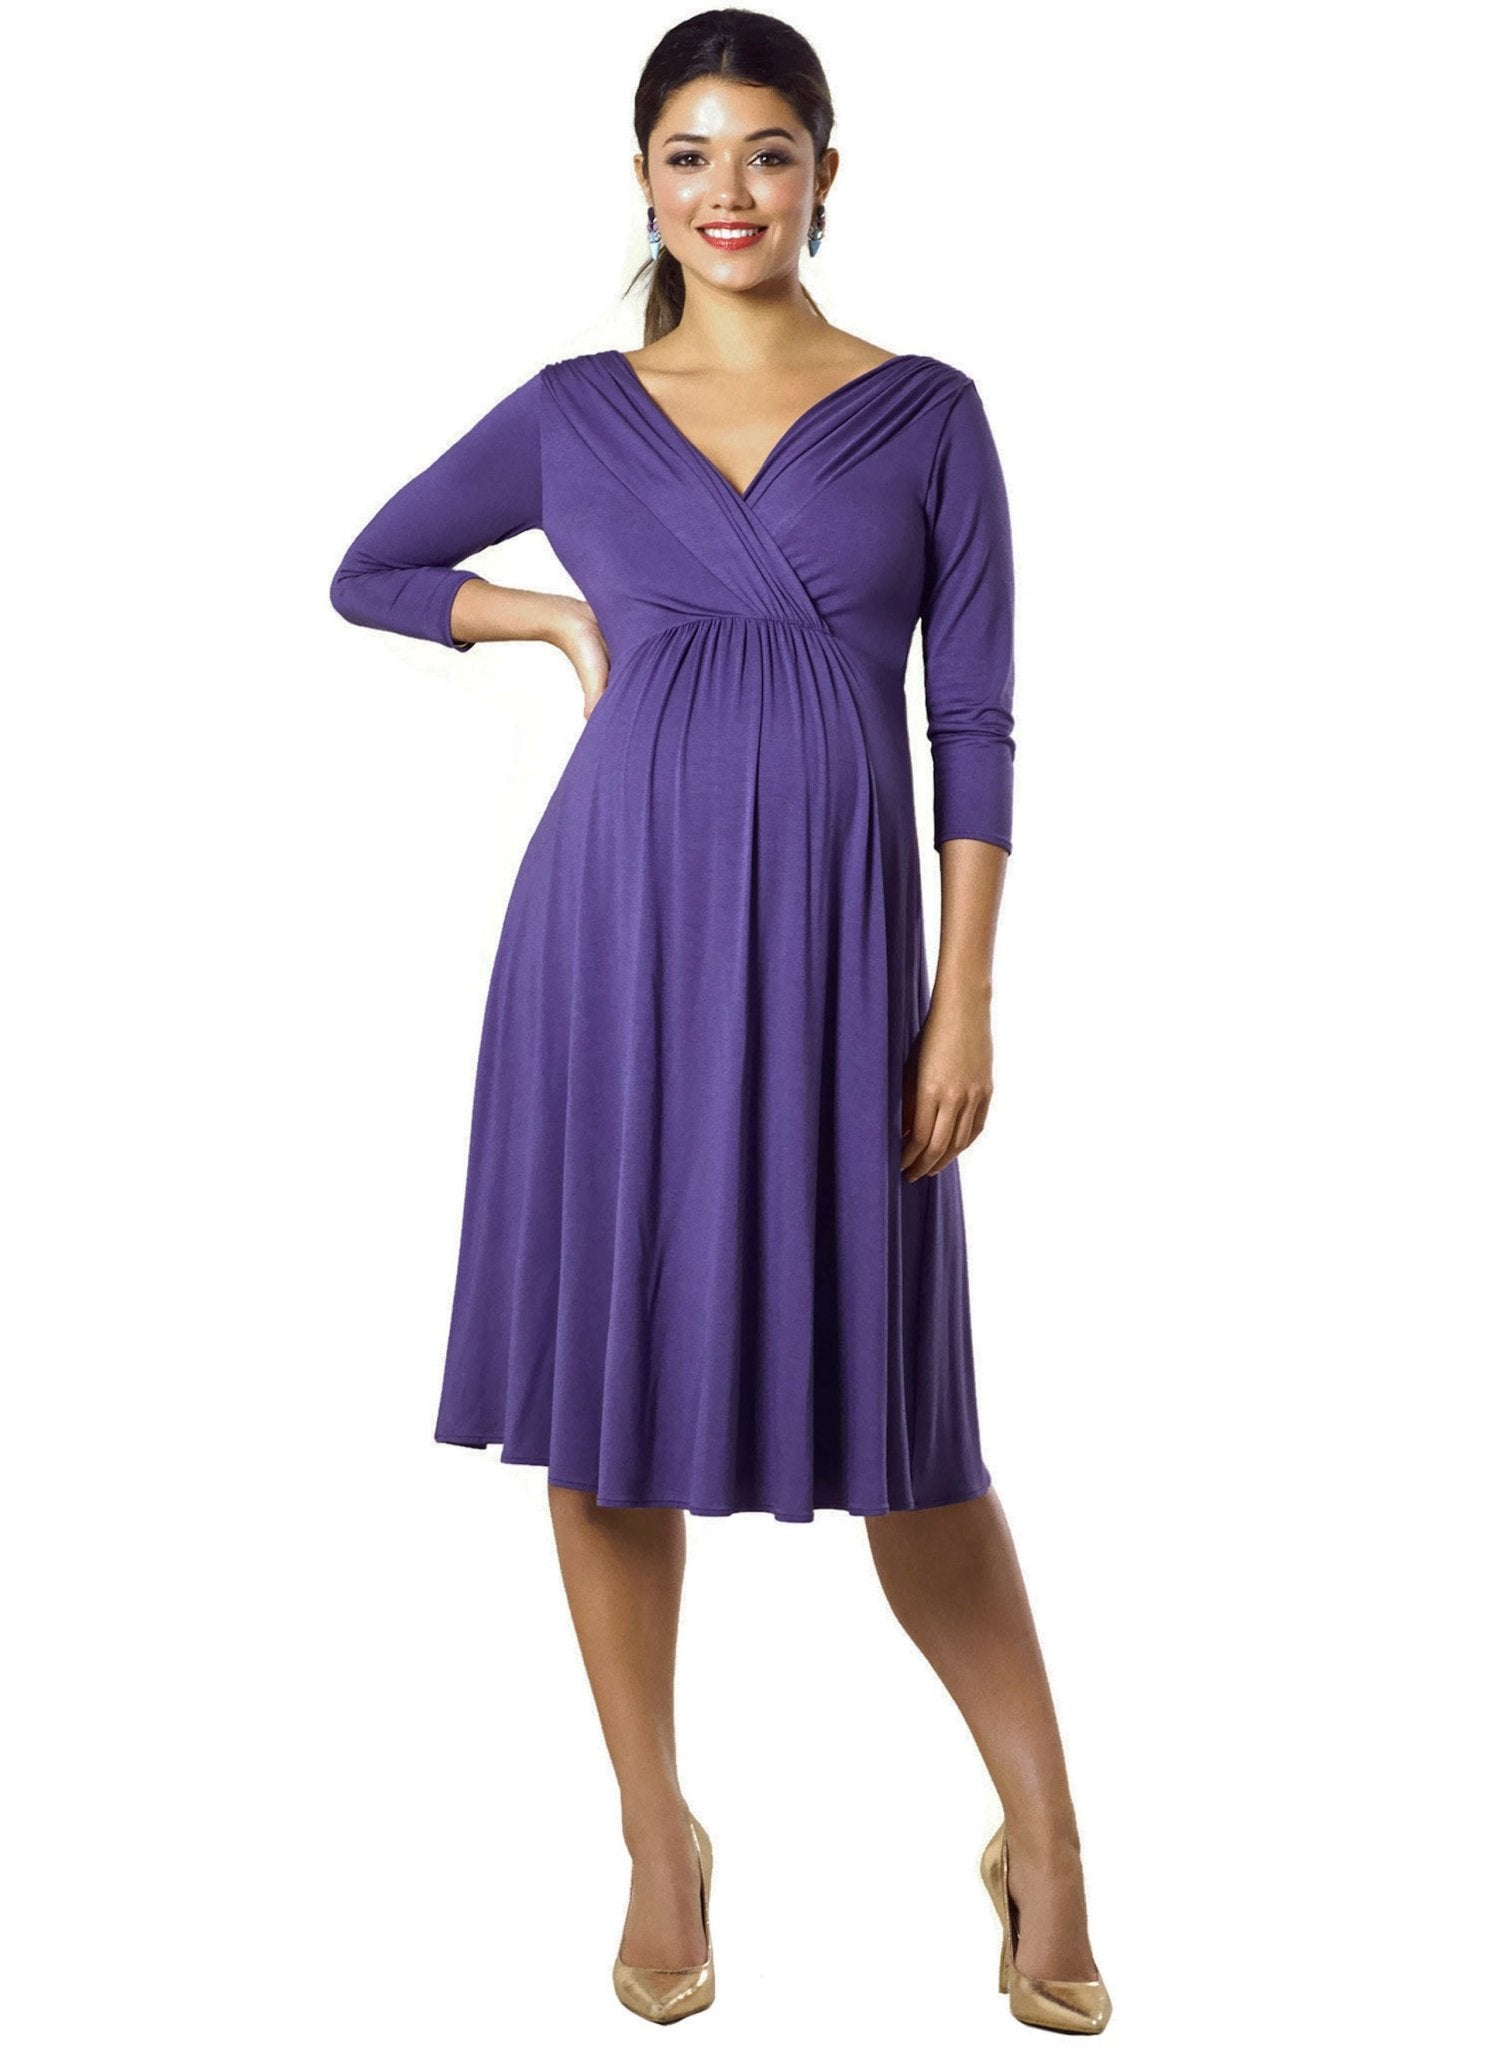 Willow Maternity Dress - Grape - Mums and Bumps